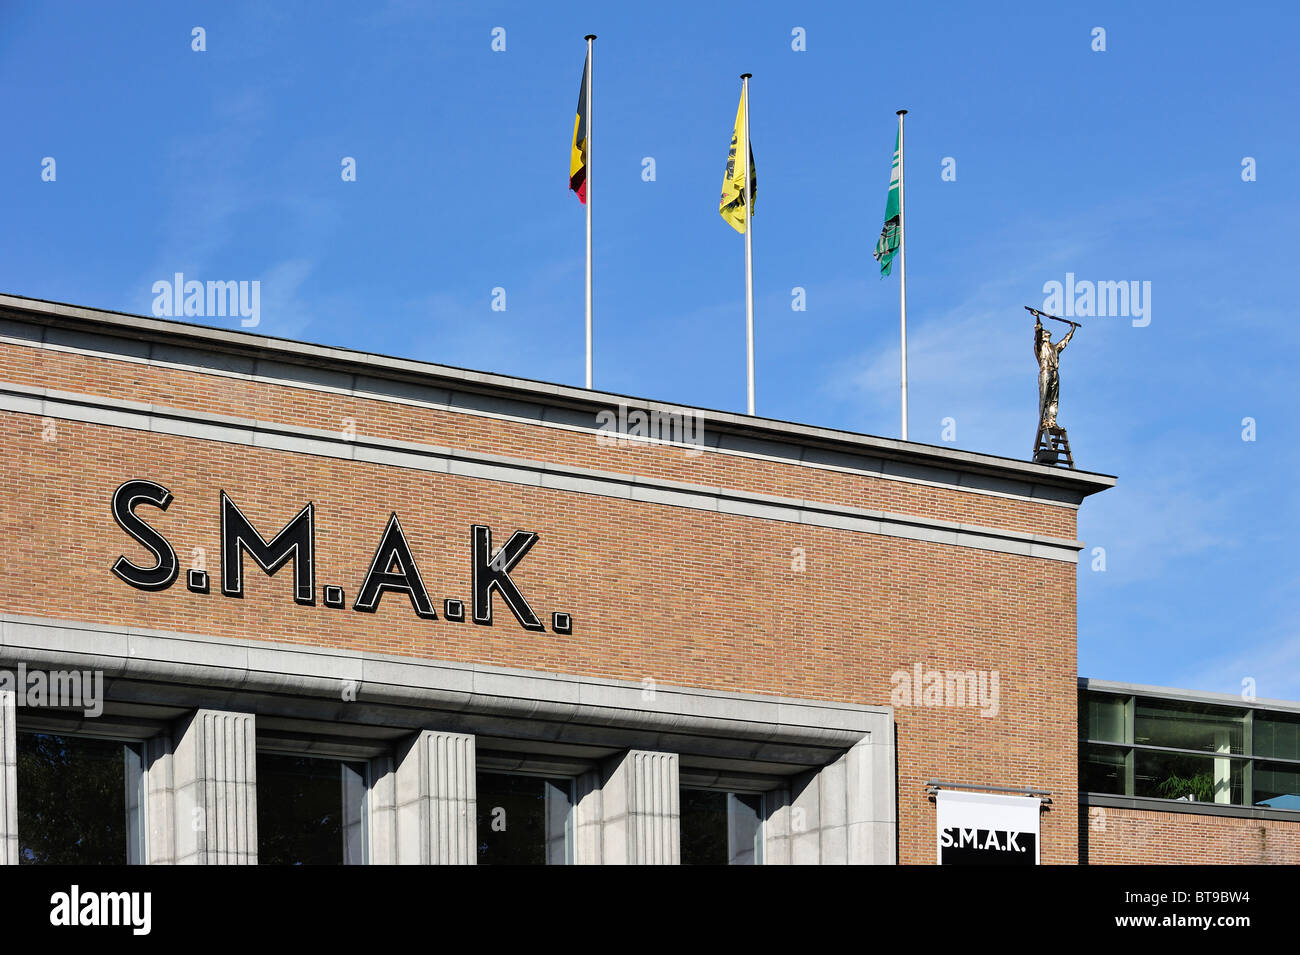 SMAK, the Municipal Museum of Contemporary Art at Ghent with sculpture of Jan Fabre on roof, Belgium - Stock Image